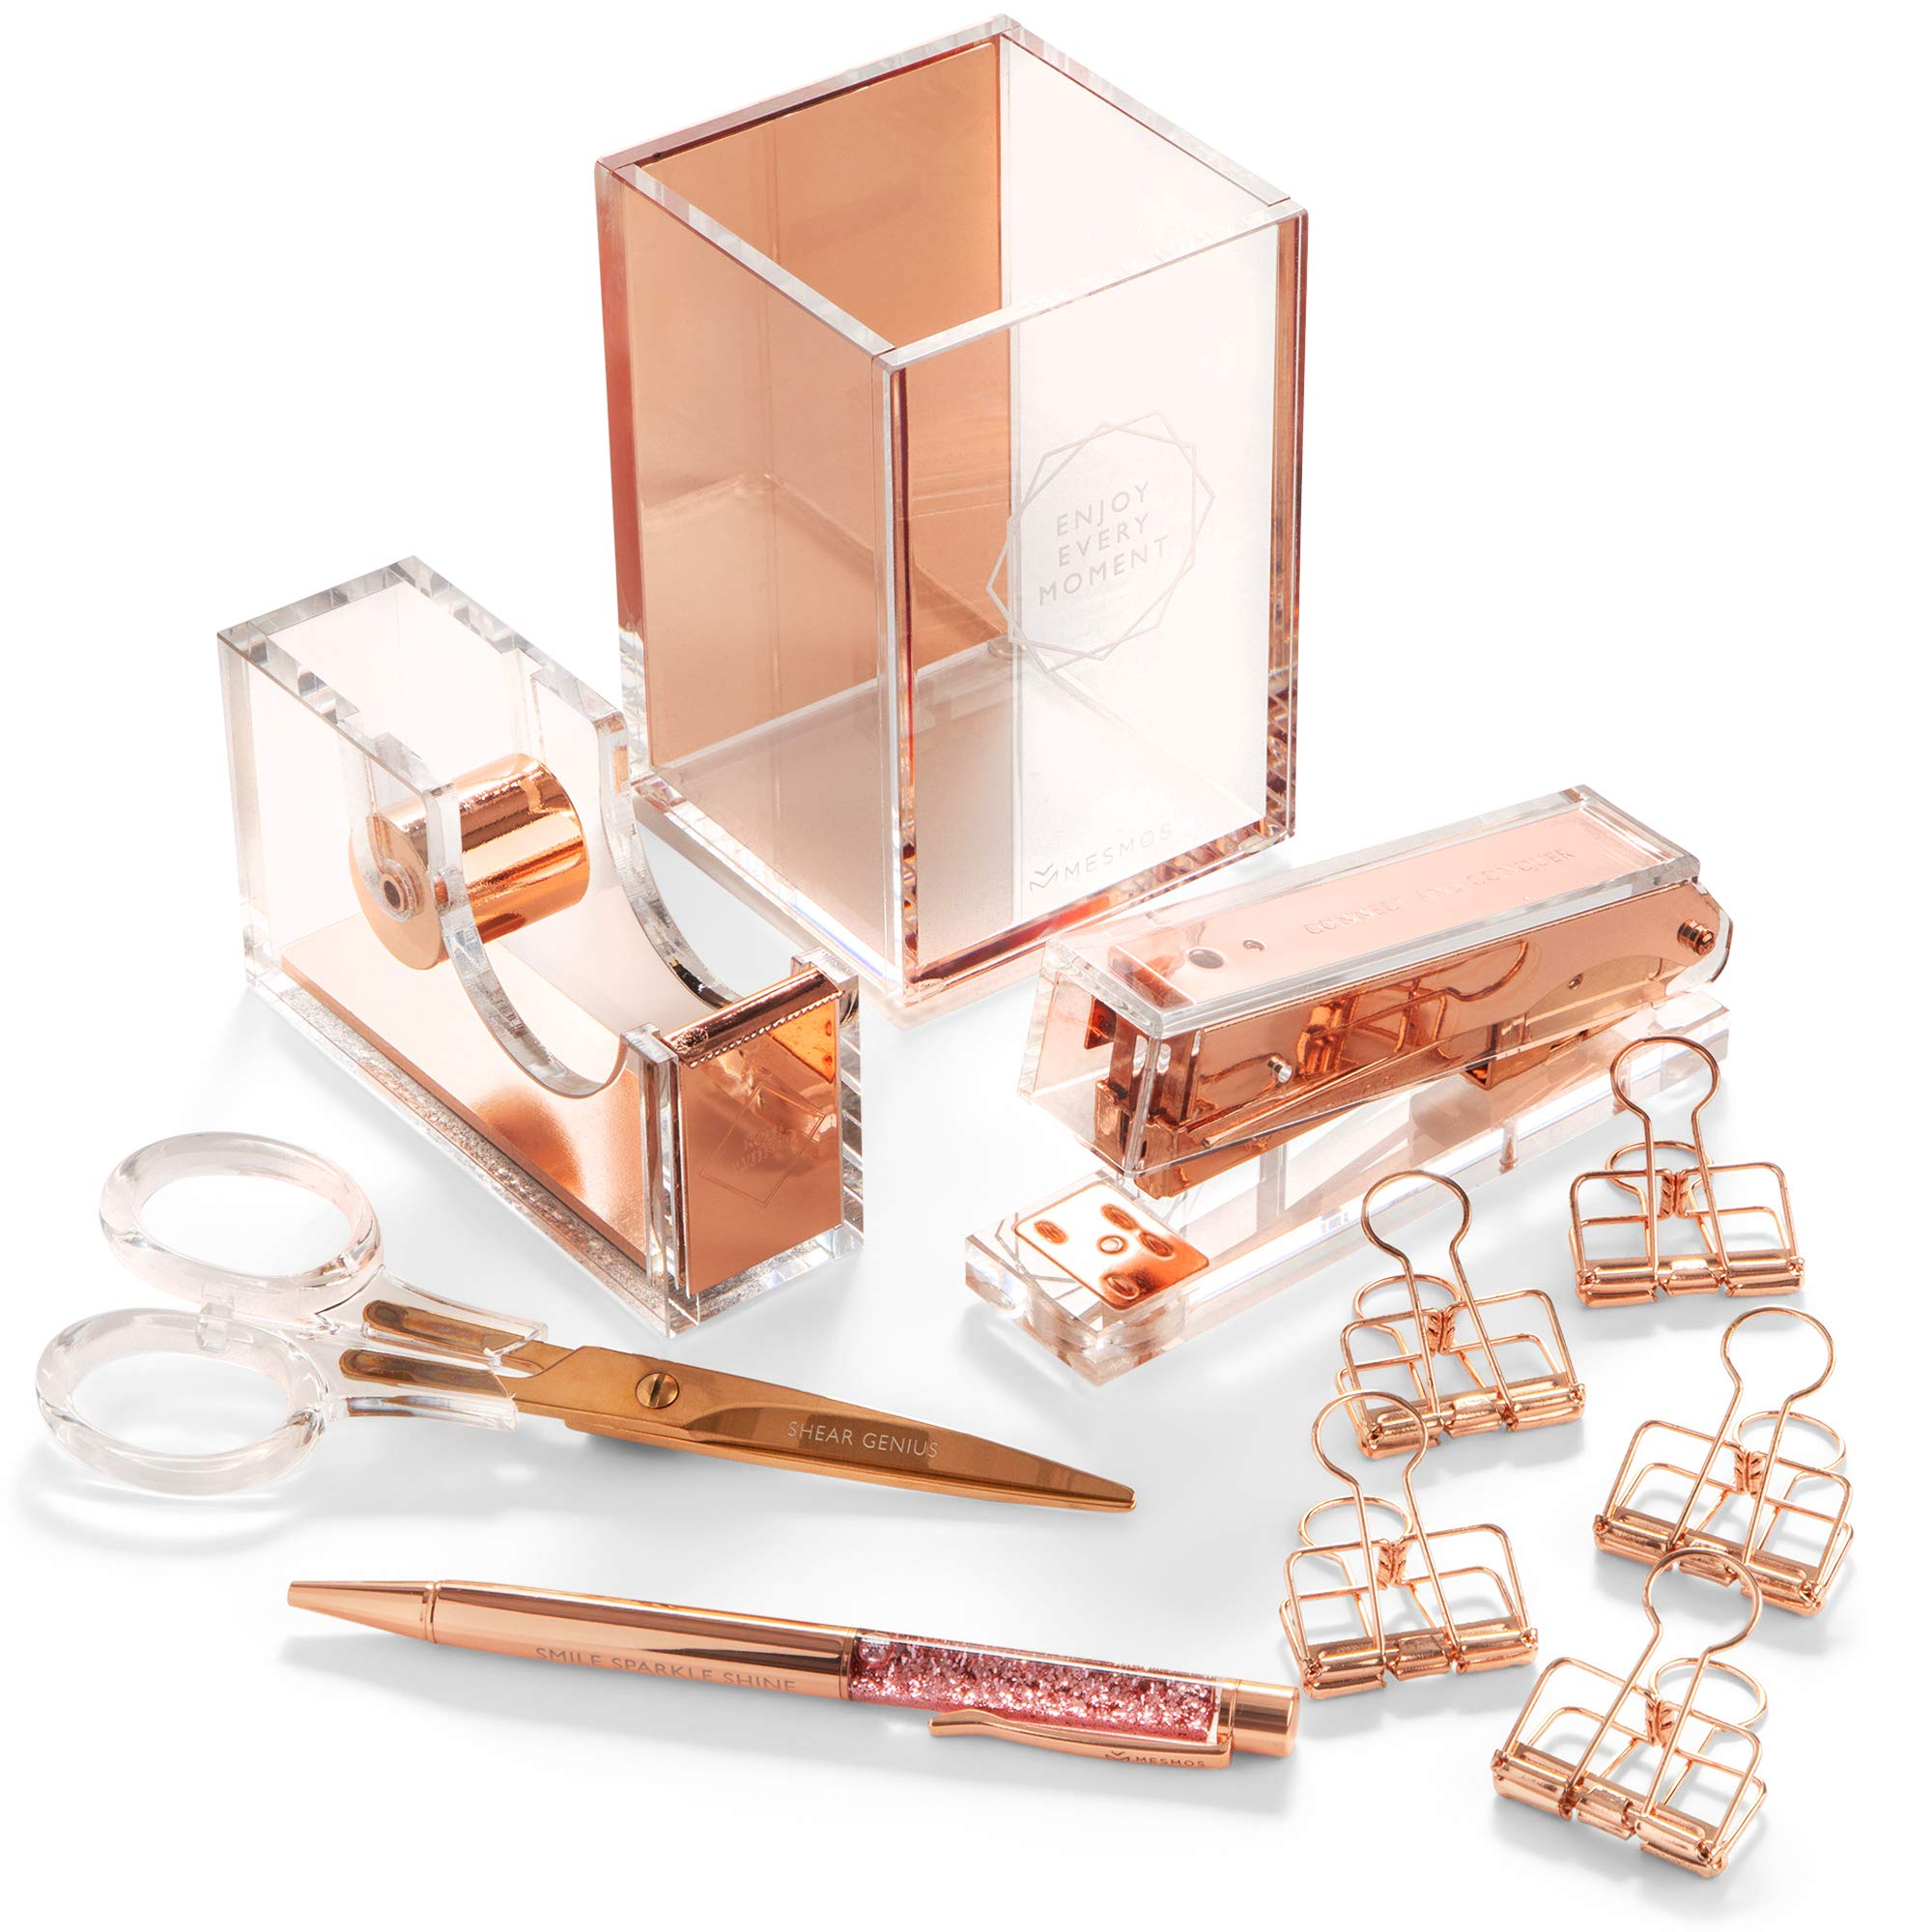 Rose Gold Desk Accessories & Stylish Office Supplies - 10-Piece Desk Set for Rose Gold Office, Home, Work, Writing, and Project Organizer - Comes with Cute Stapler, Pen, Scissors and Tape Dispenser by MESMOS